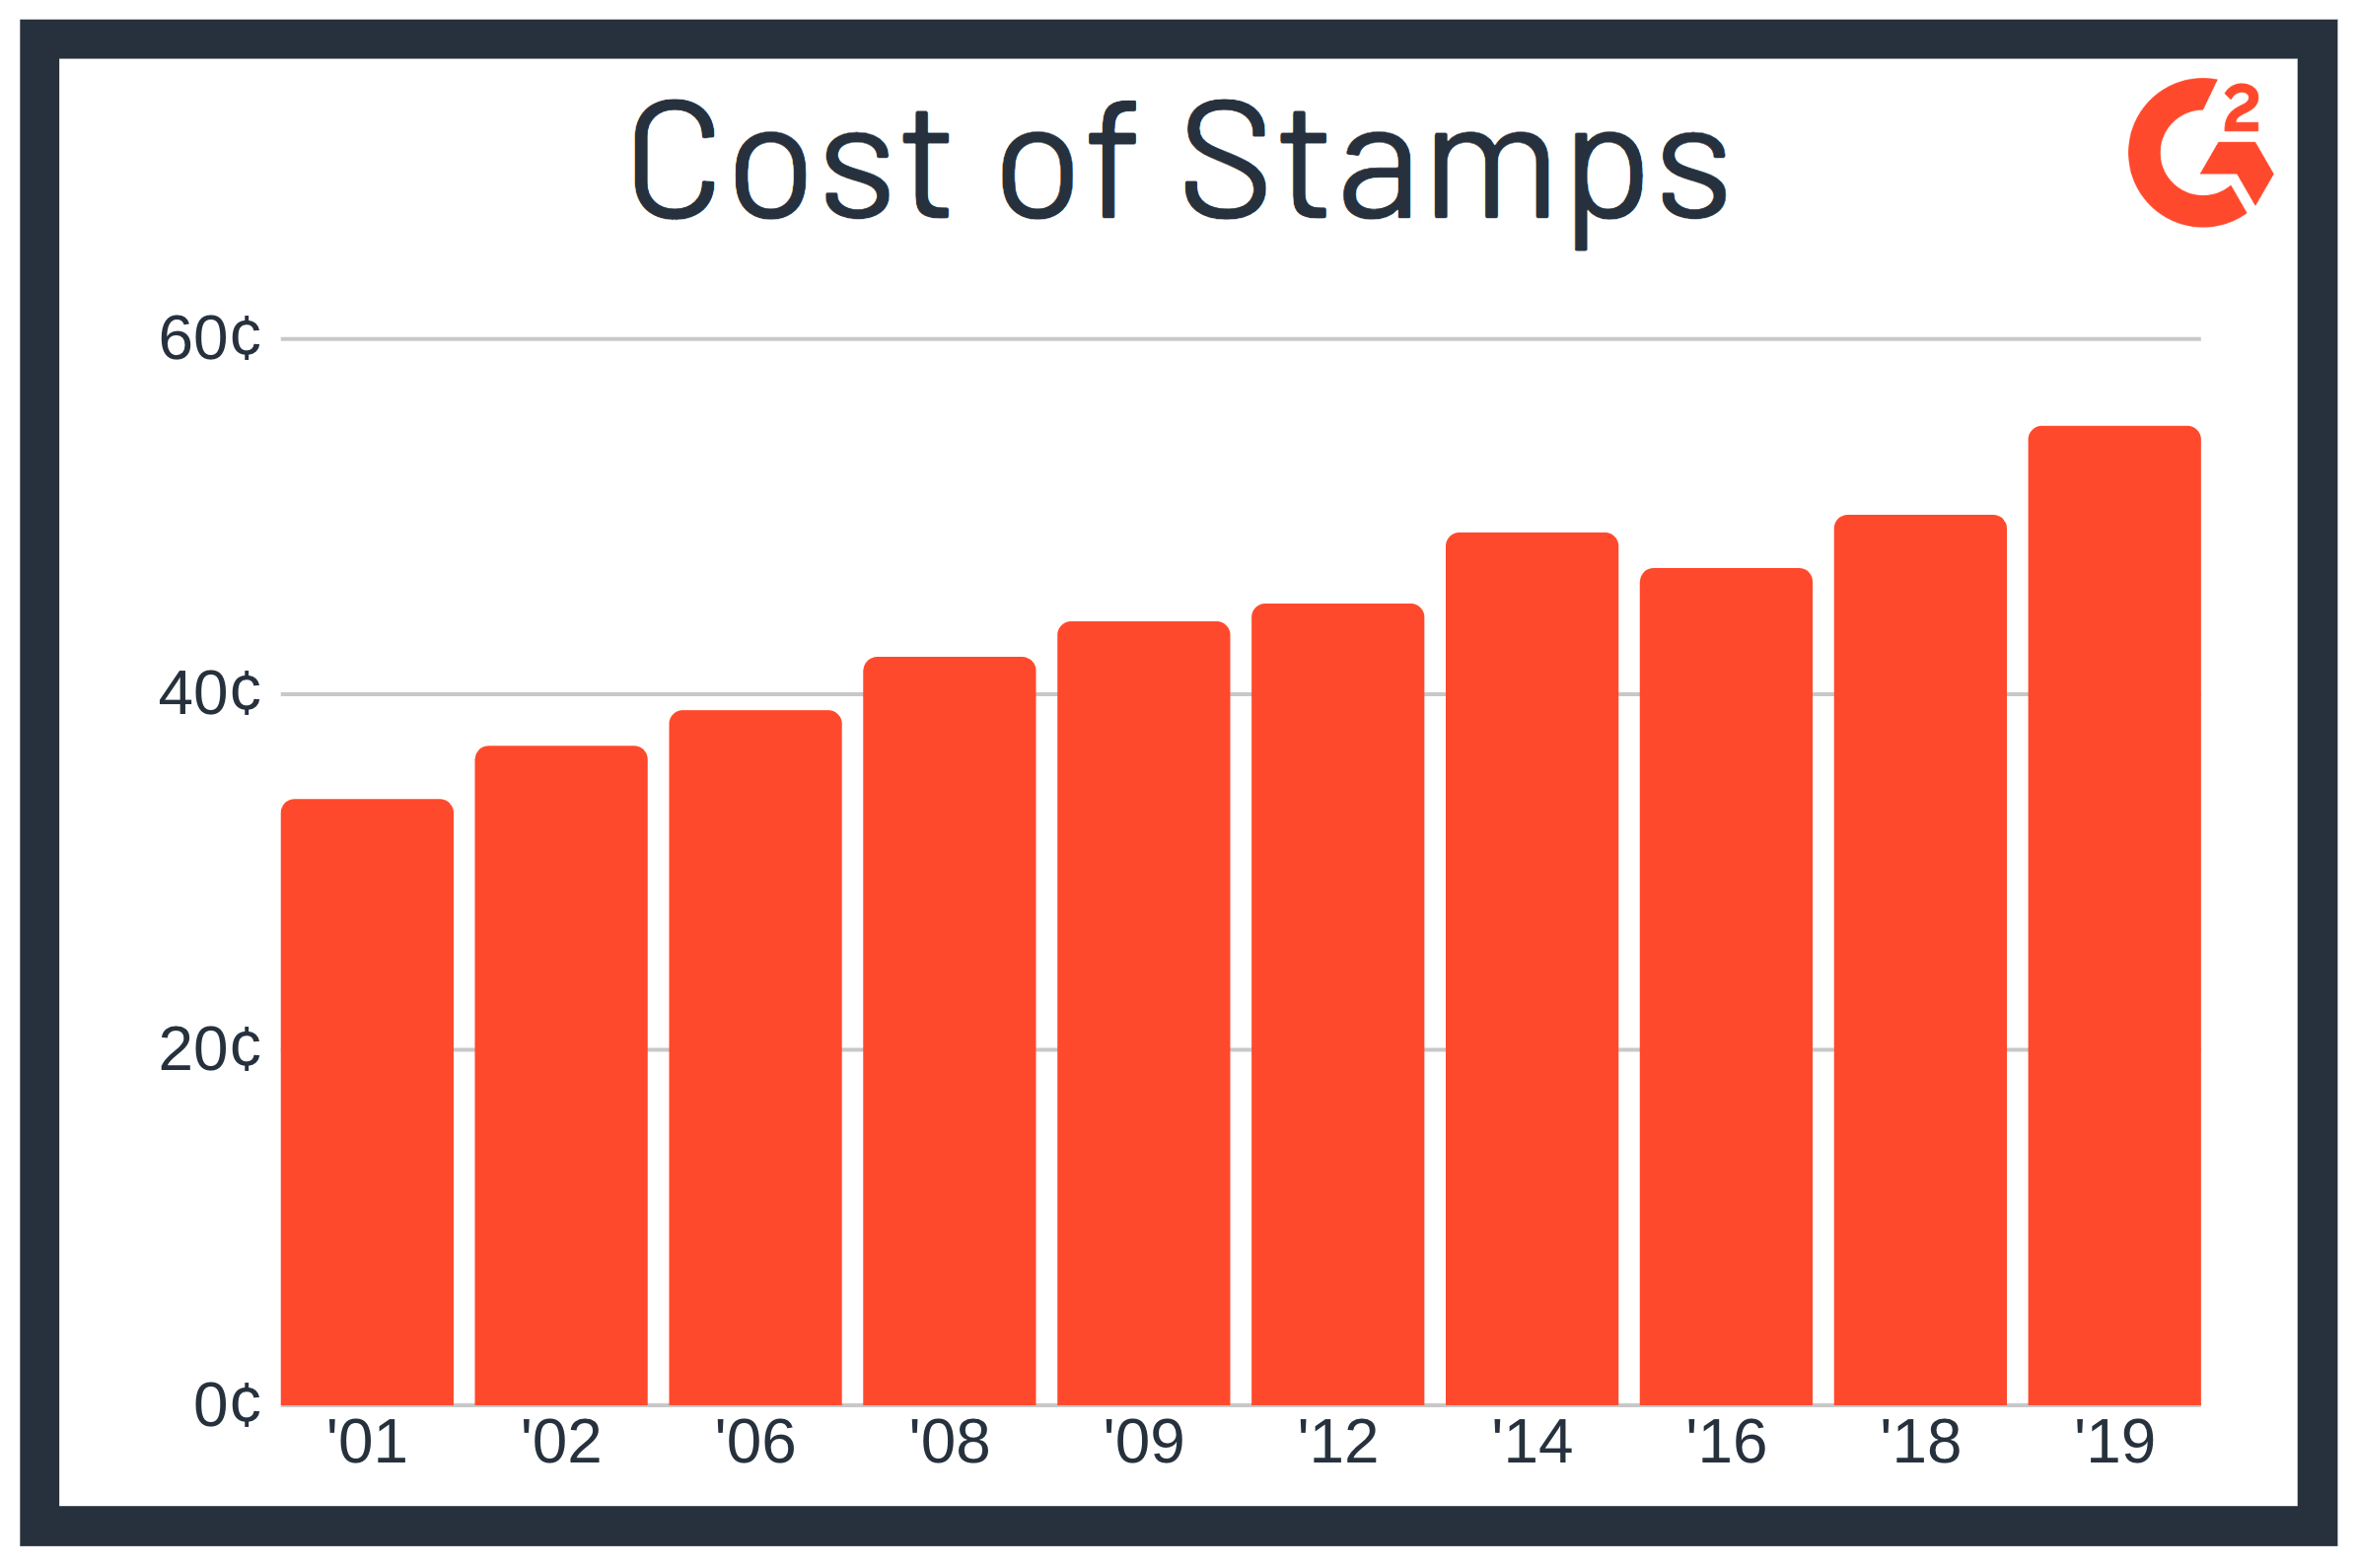 how much is a book of stamps?